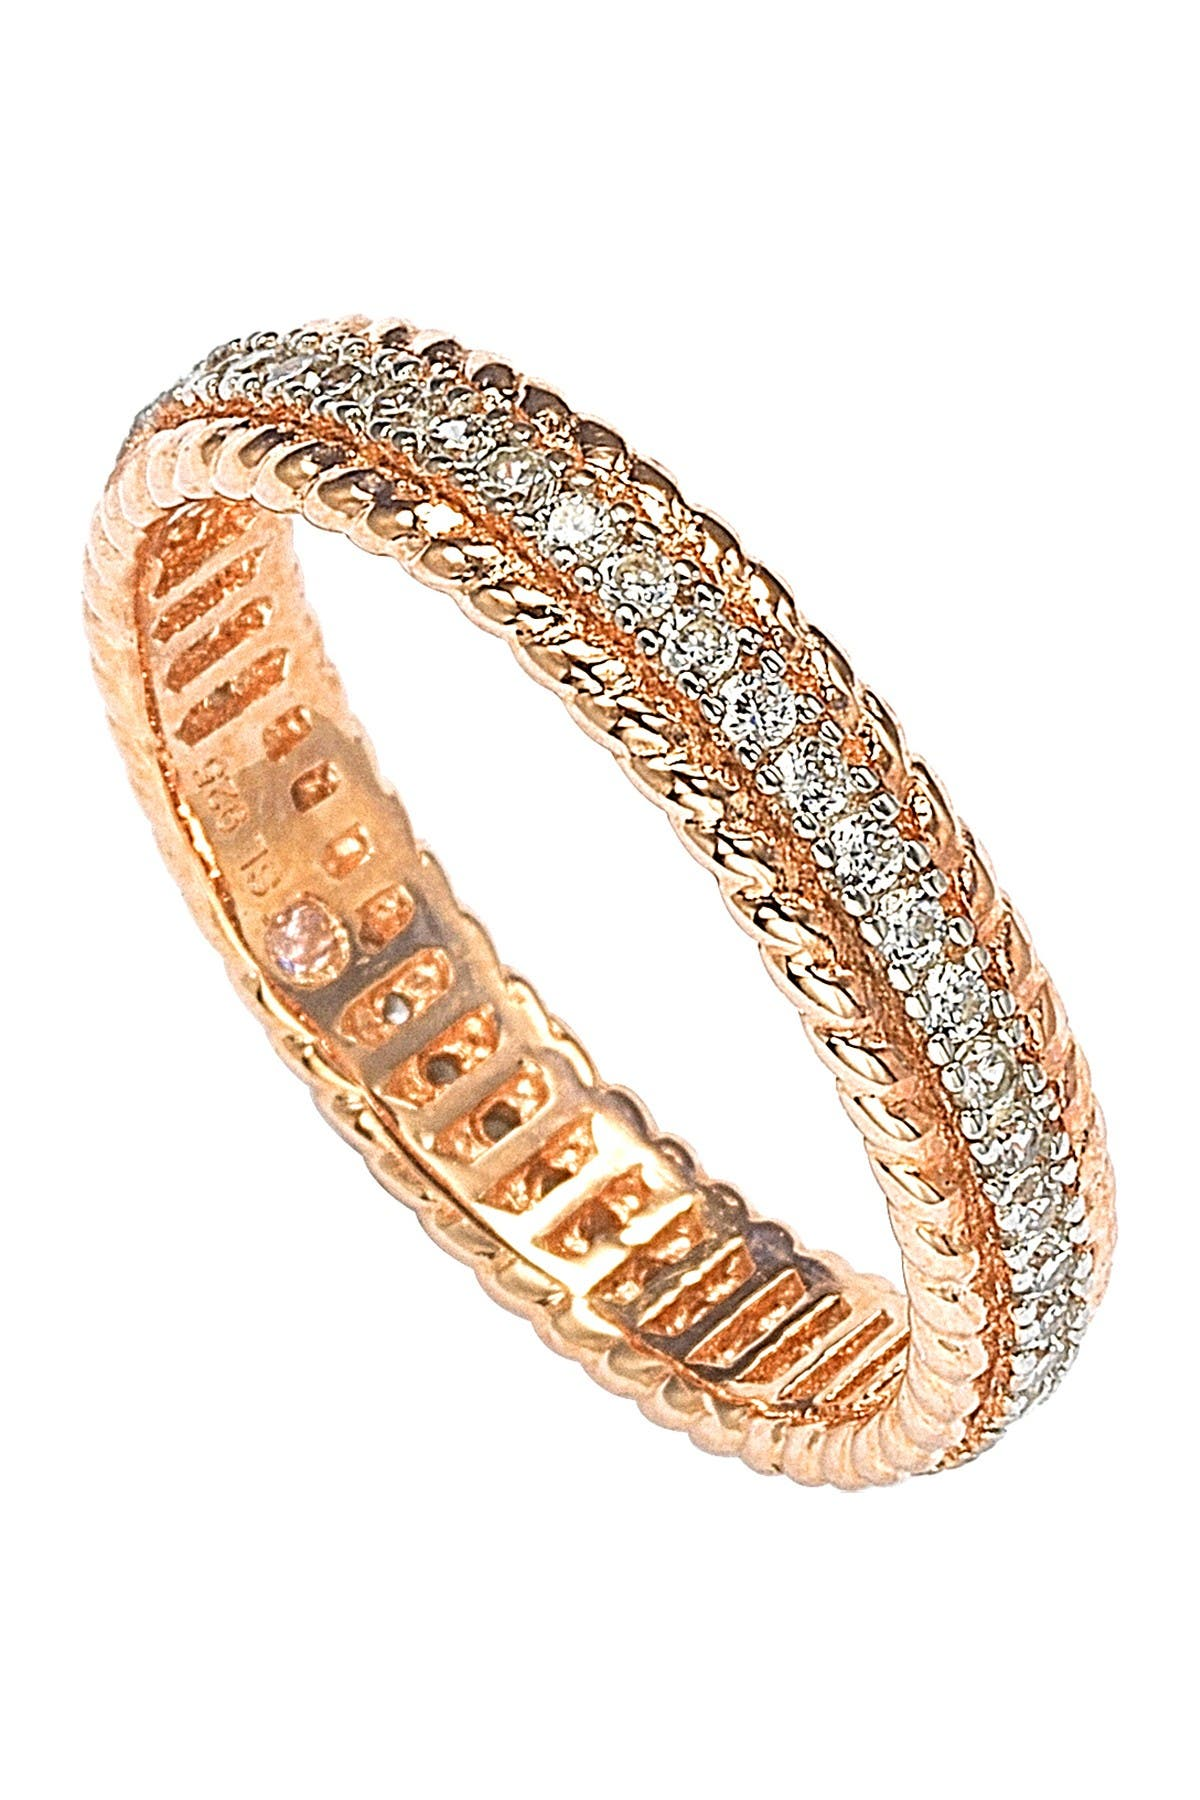 Image of Suzy Levian Rose-Tone Sterling Silver CZ French Filigree Eternity Band